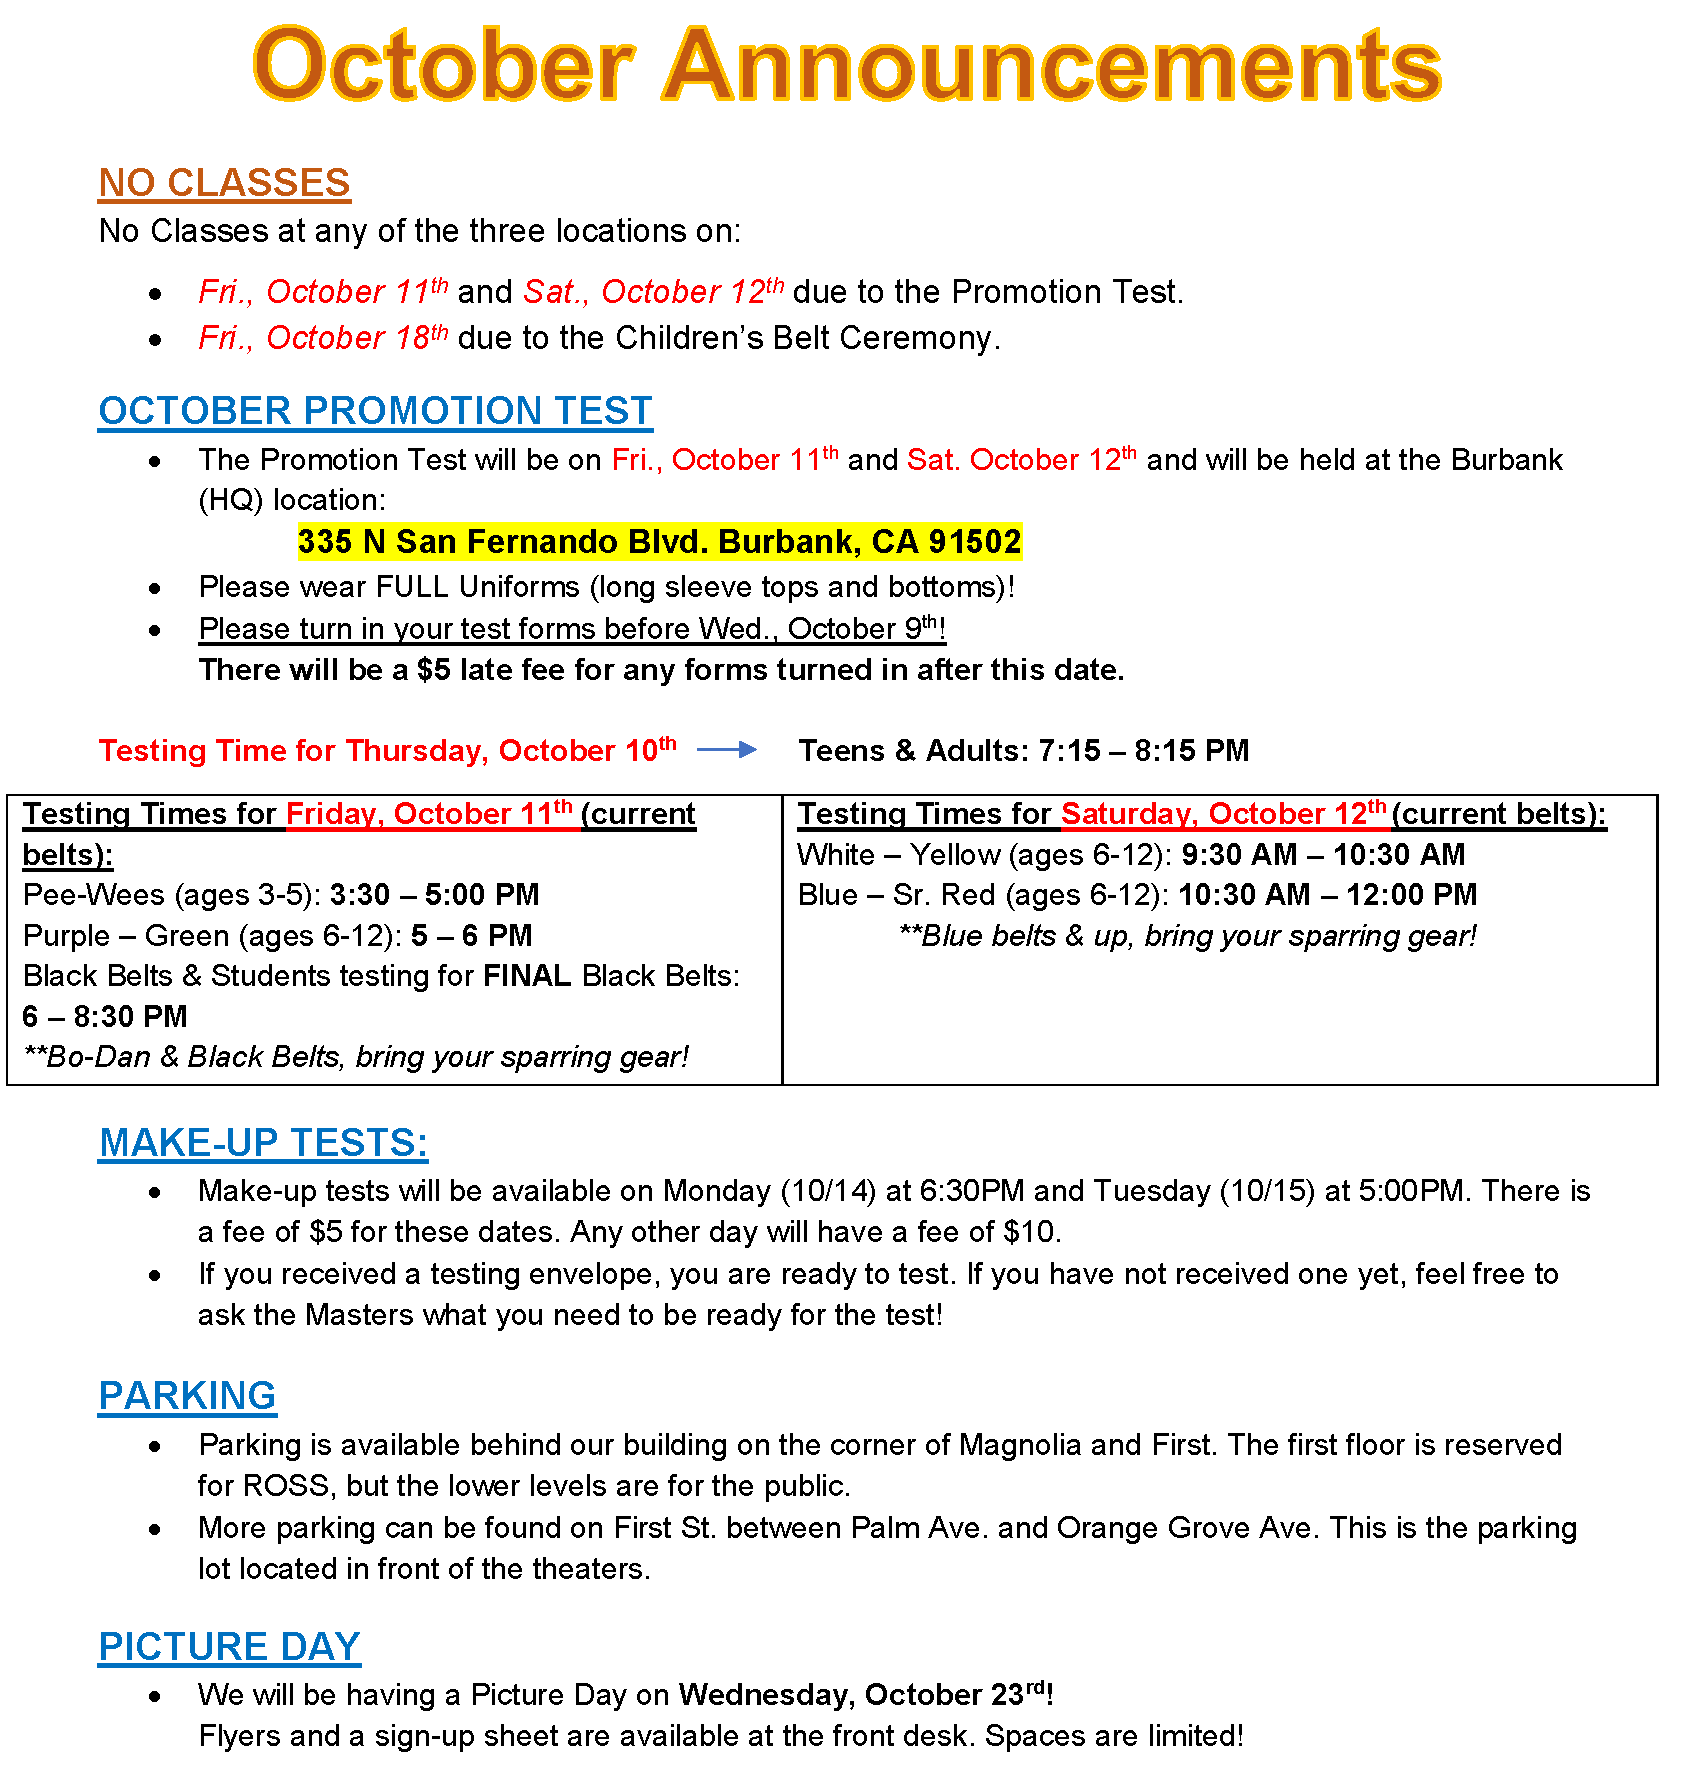 October Announcements_Page_1.png